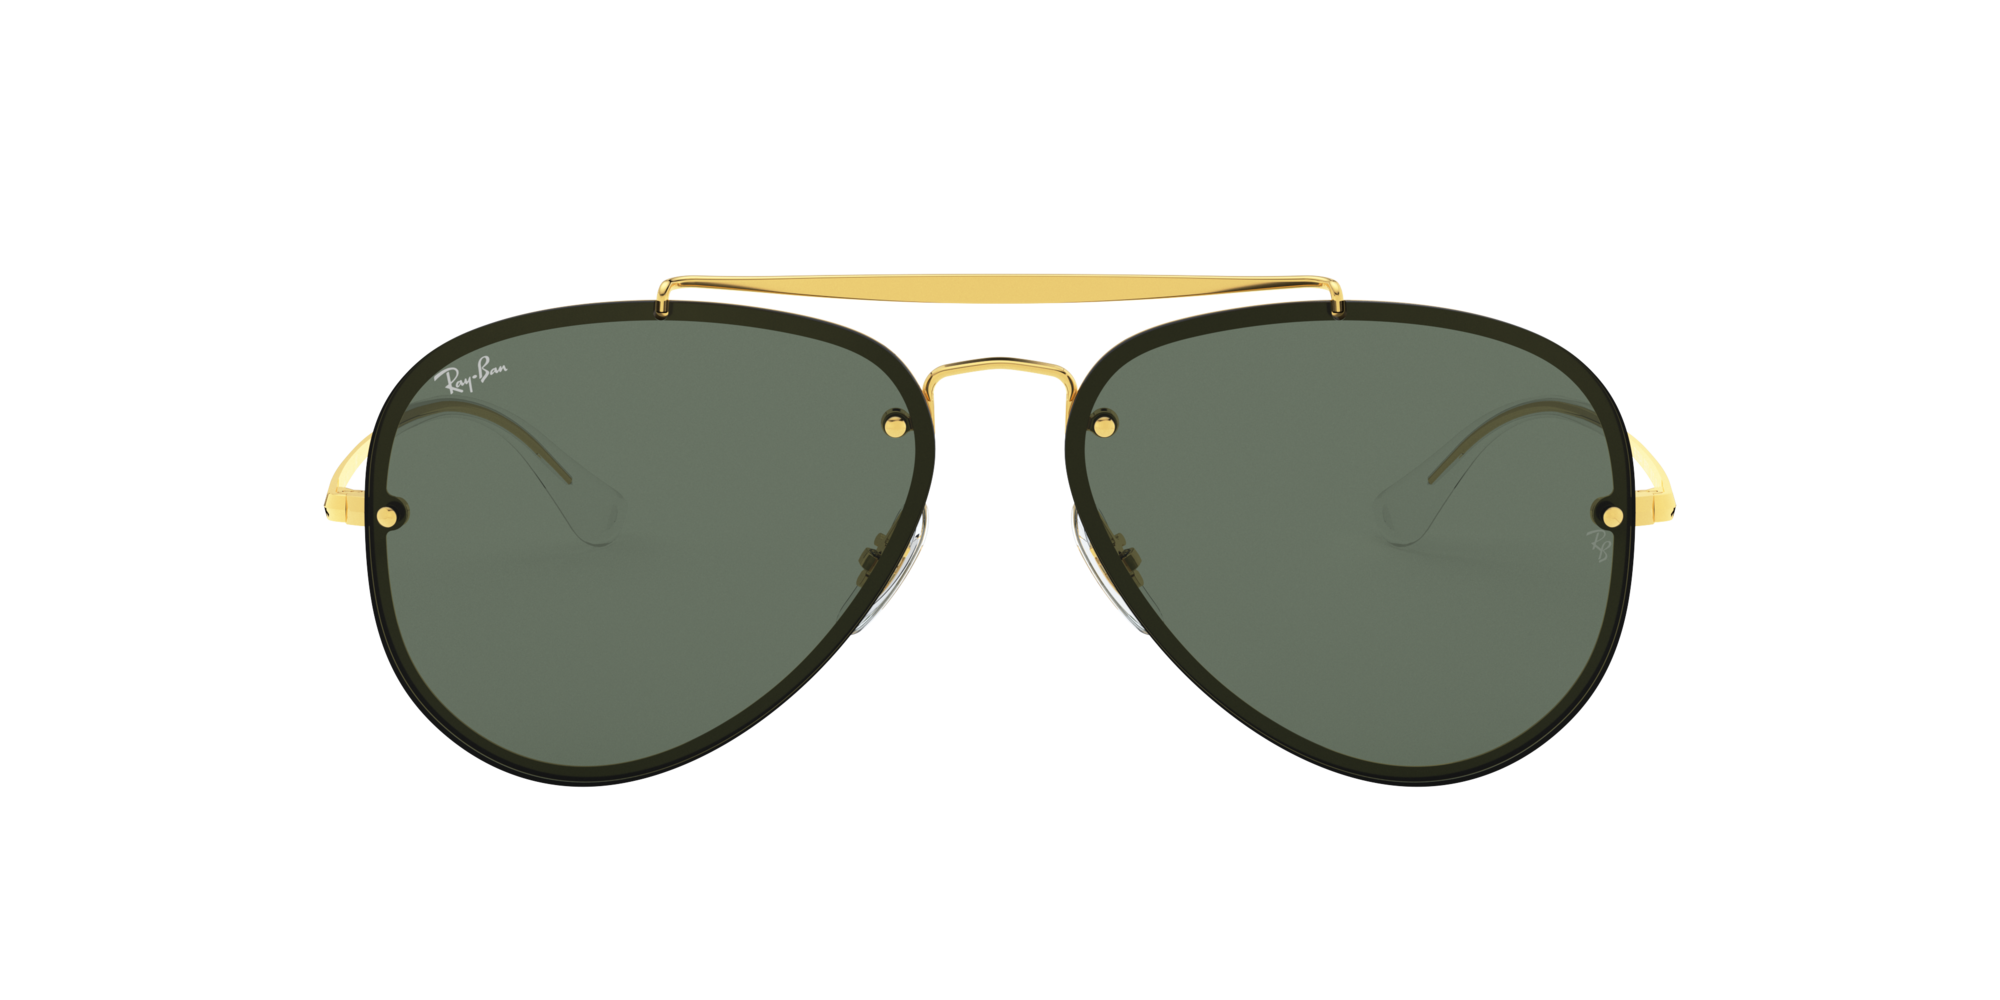 Image for RB3584N 61 BLAZE AVIATOR from LensCrafters | Glasses, Prescription Glasses Online, Eyewear